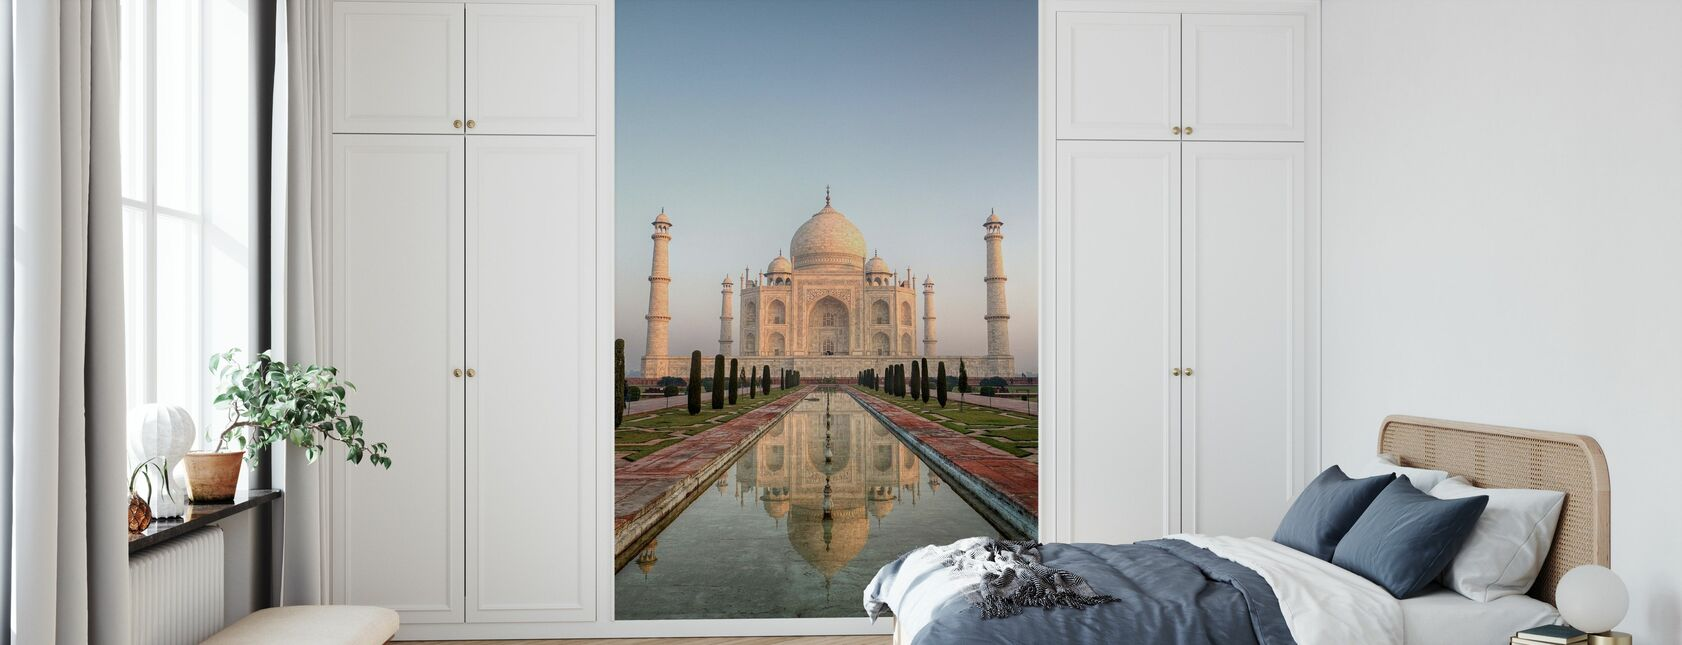 Sunrise at Taj Mahal - Wallpaper - Bedroom